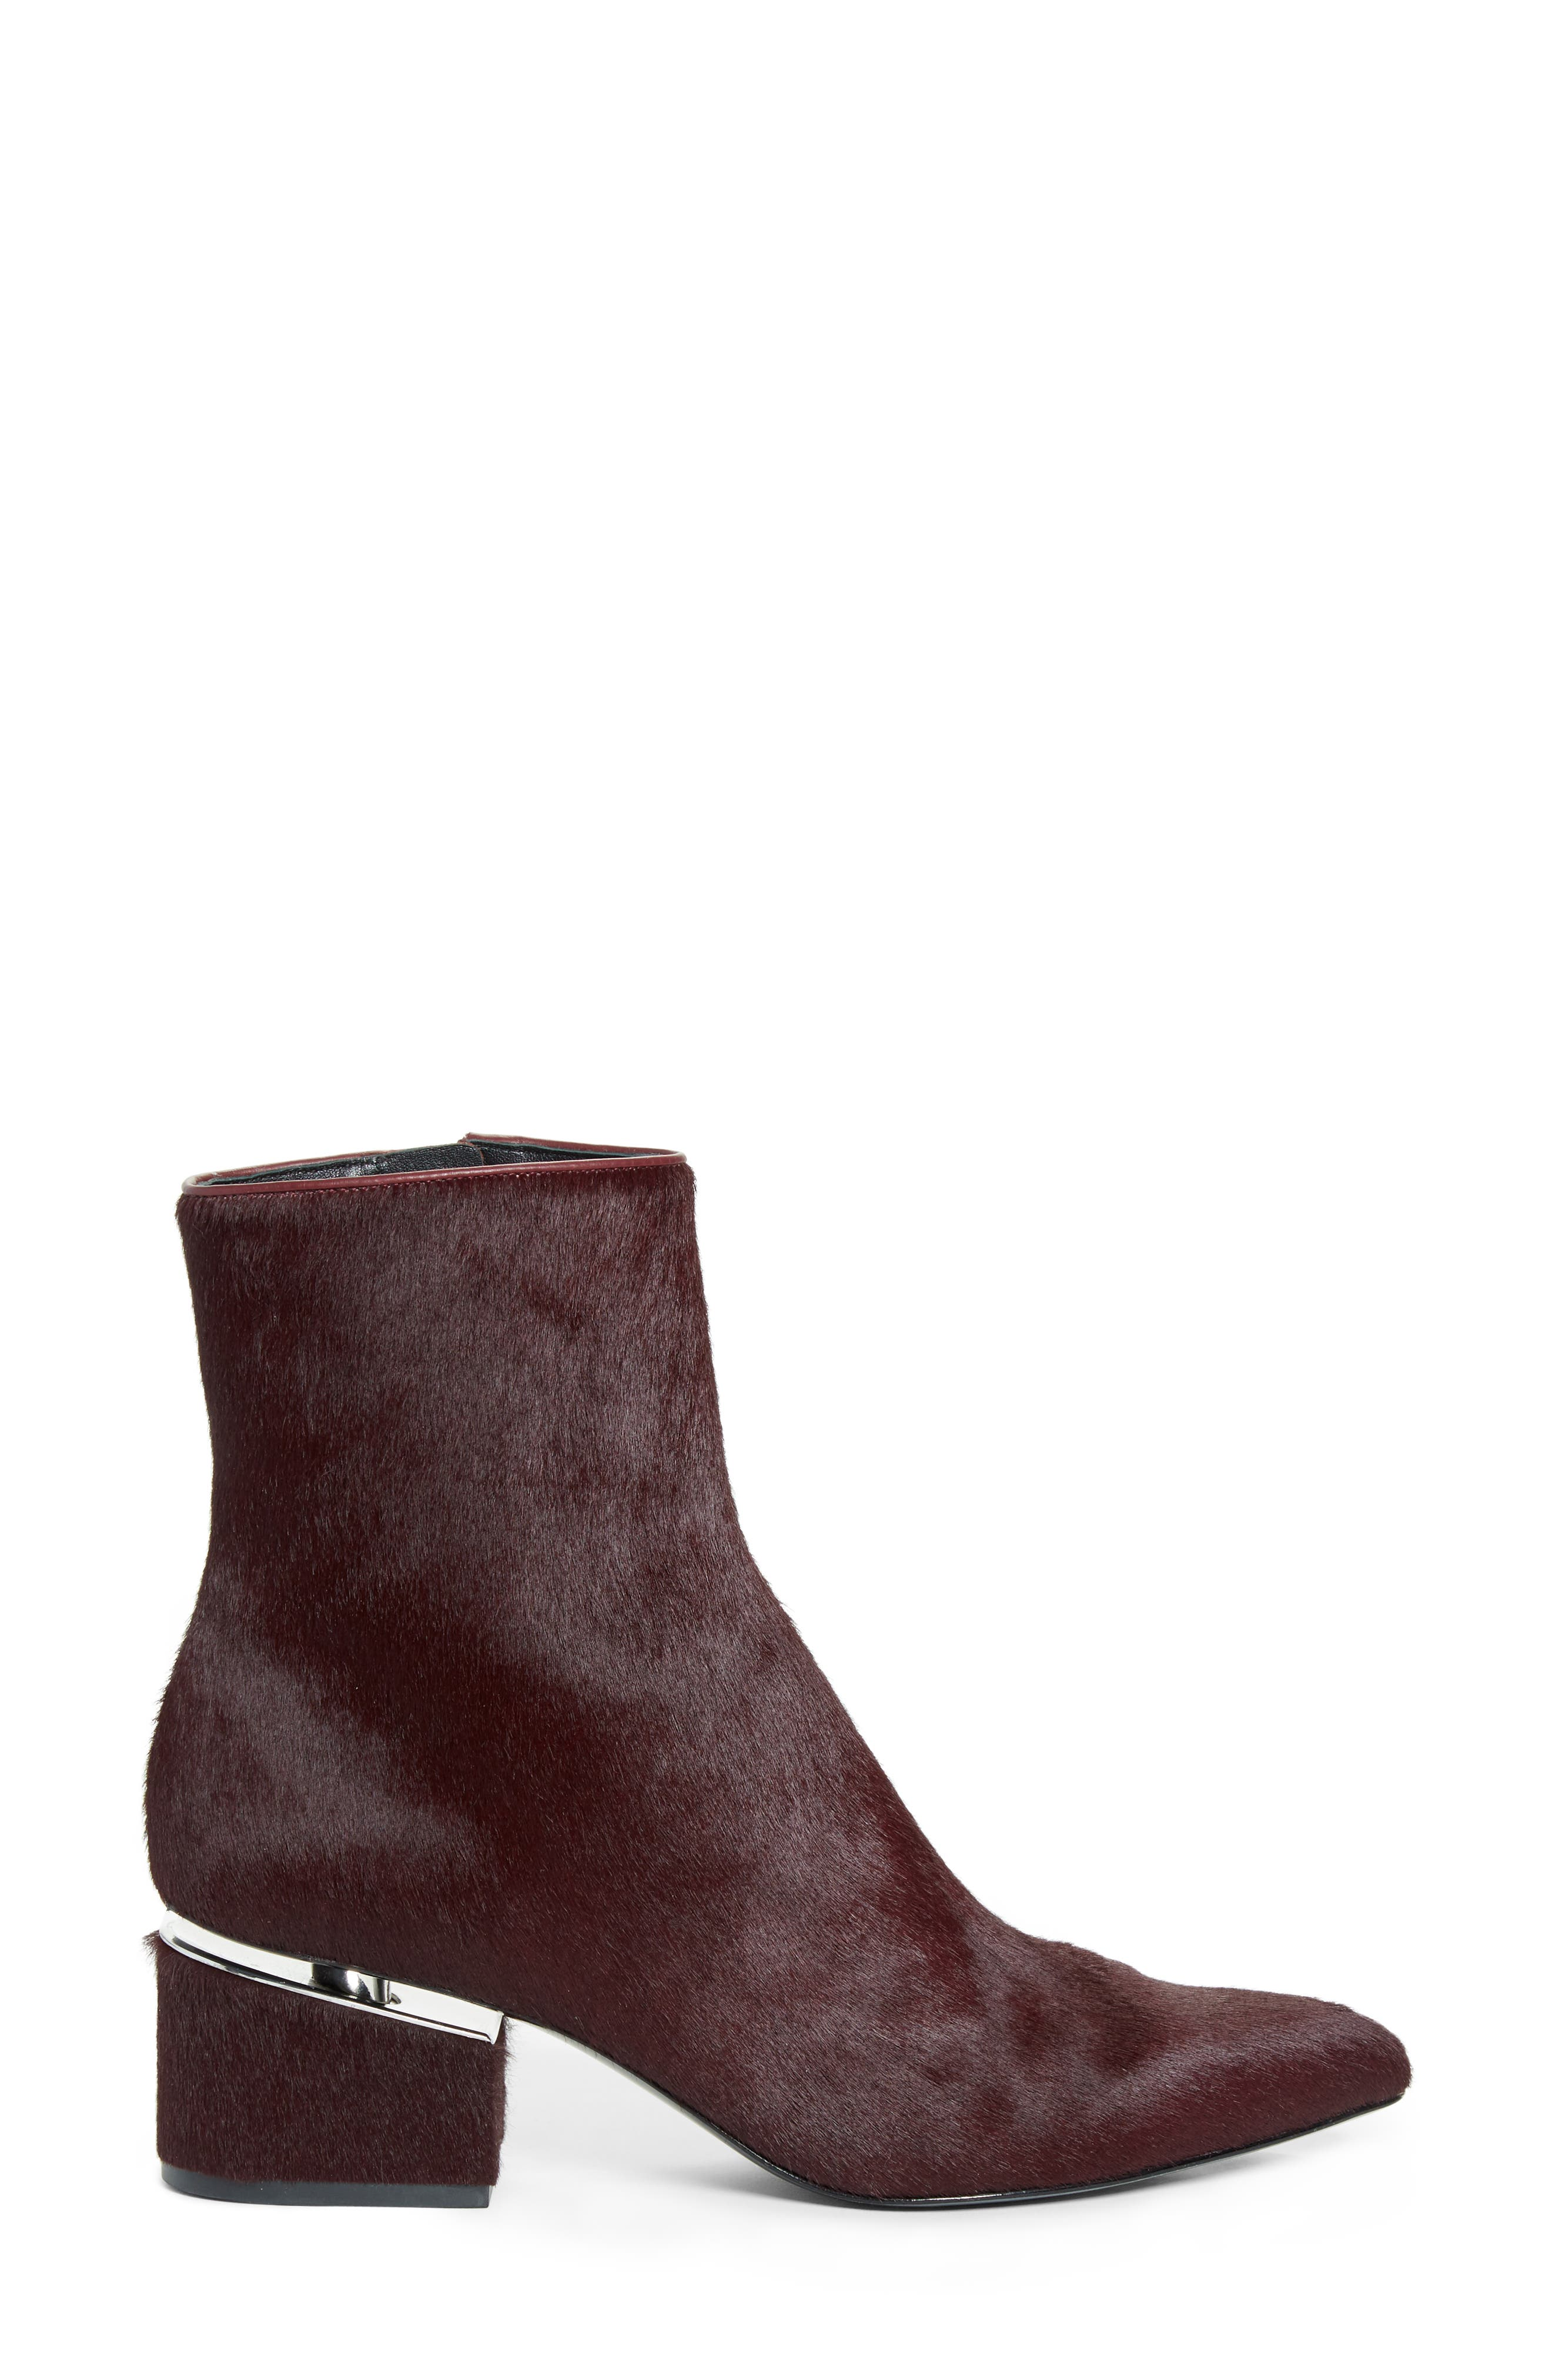 Jude Genuine Calf Hair Bootie,                             Alternate thumbnail 3, color,                             Burgundy Leather